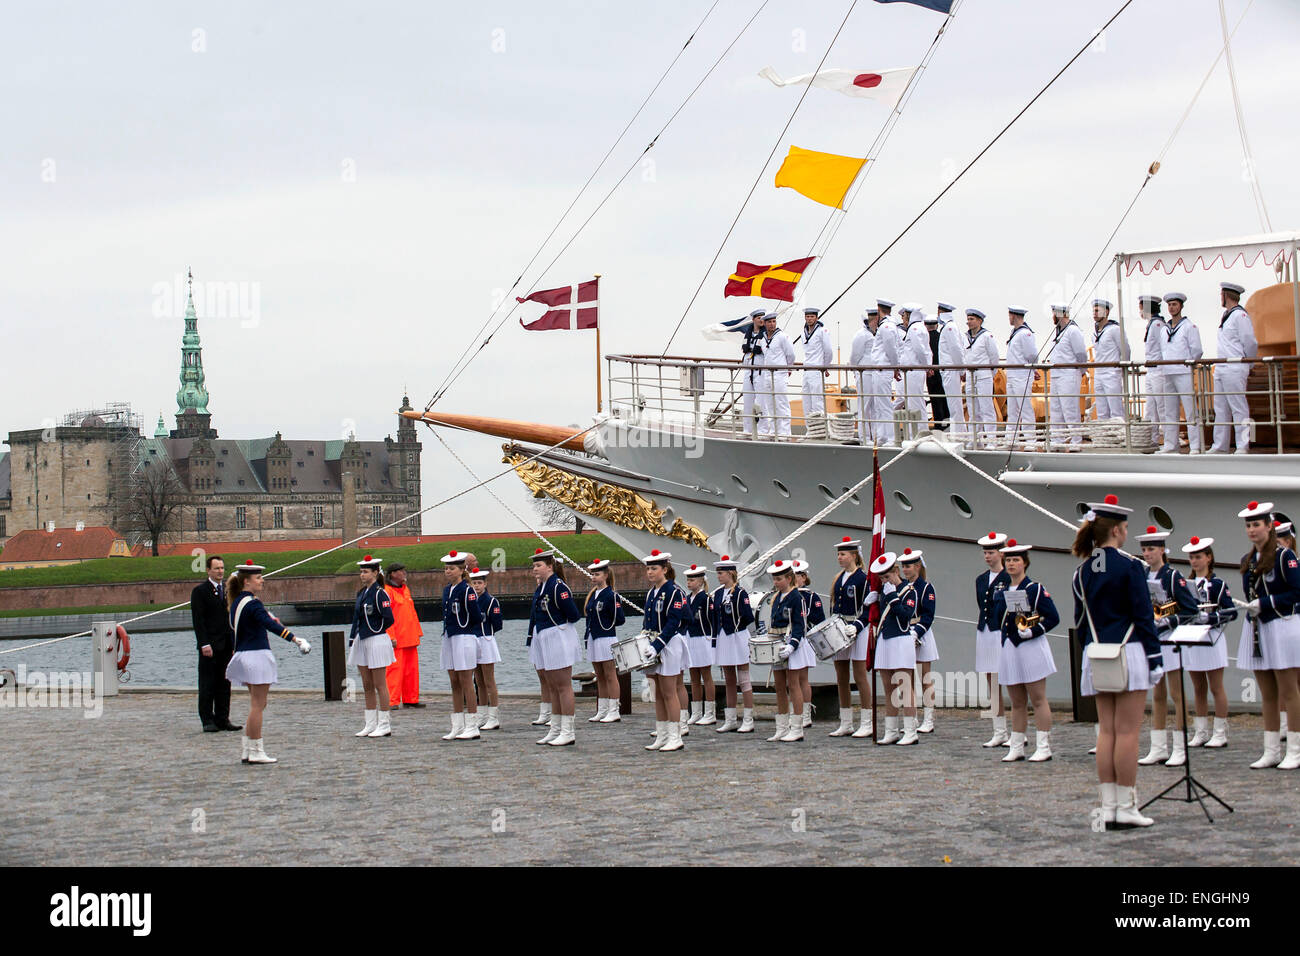 Helsingore, Denmark. 5th May, 2015. The royal ship, Dannebrog, arrives with H.M. Queen Margrethe and Prince Consort - Stock Image